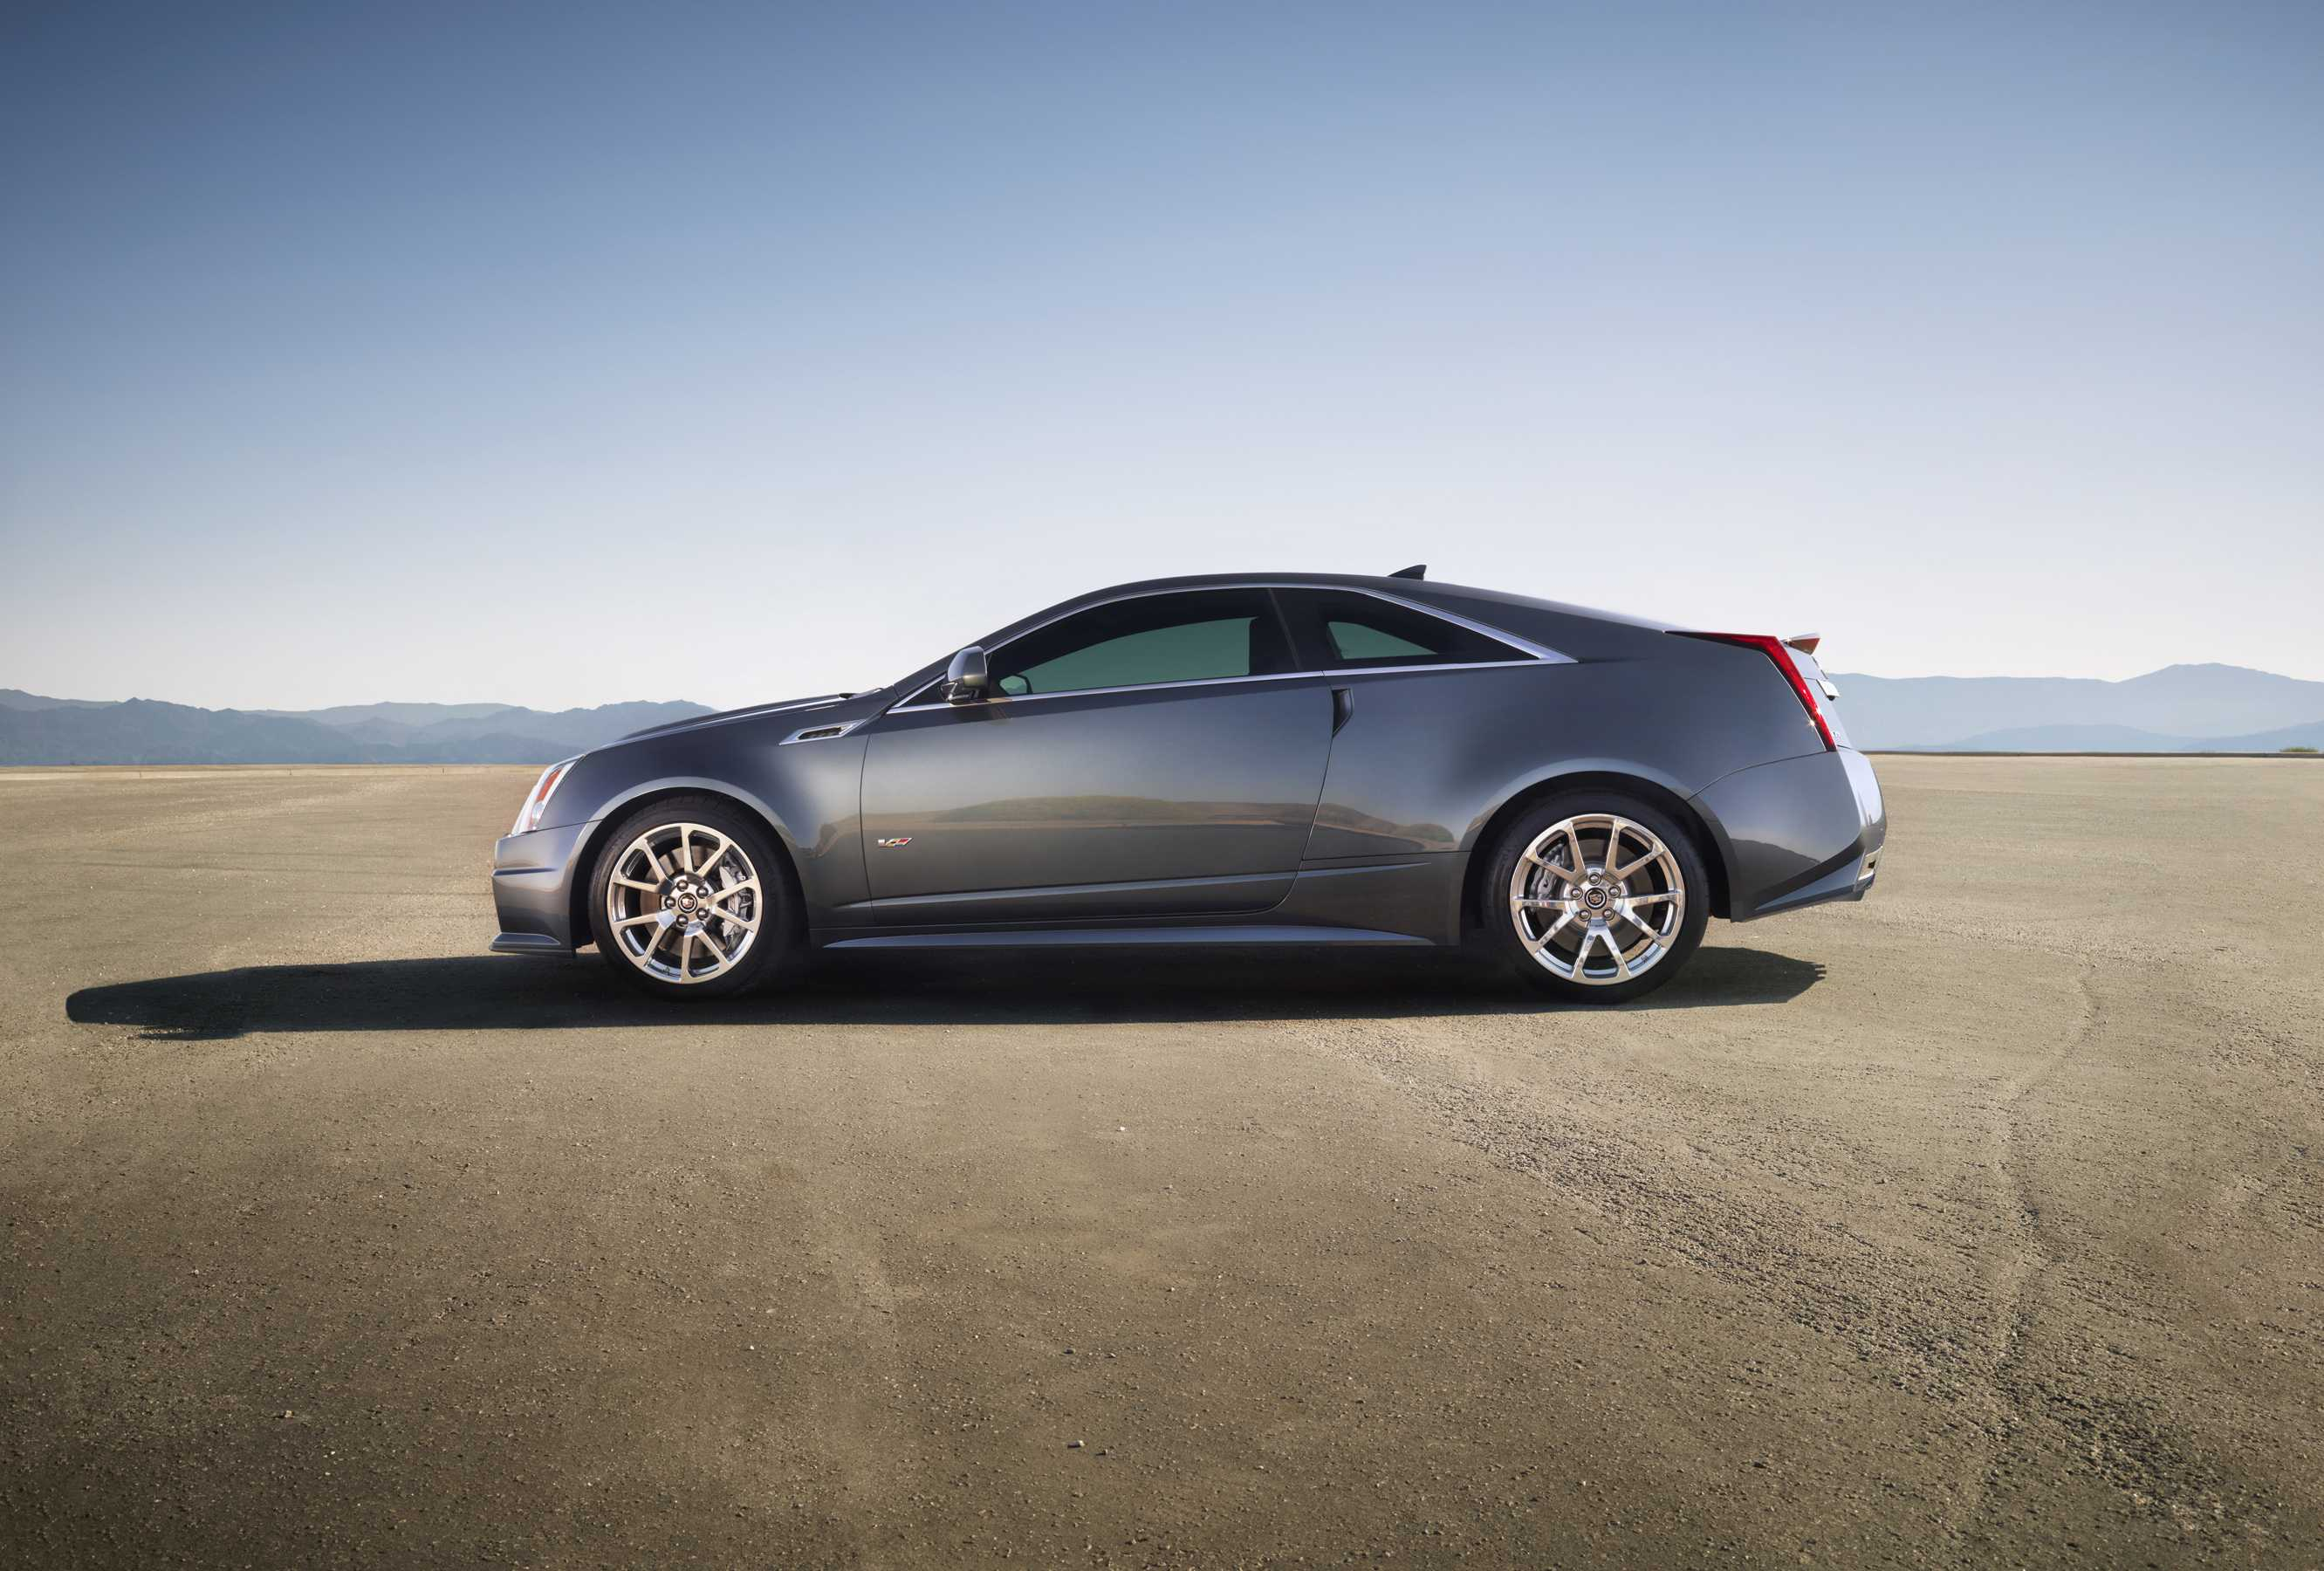 cadillac-cts-coupe-side-0-320261 Great Description About 2012 Cts-v for Sale with Inspiring Images Cars Review